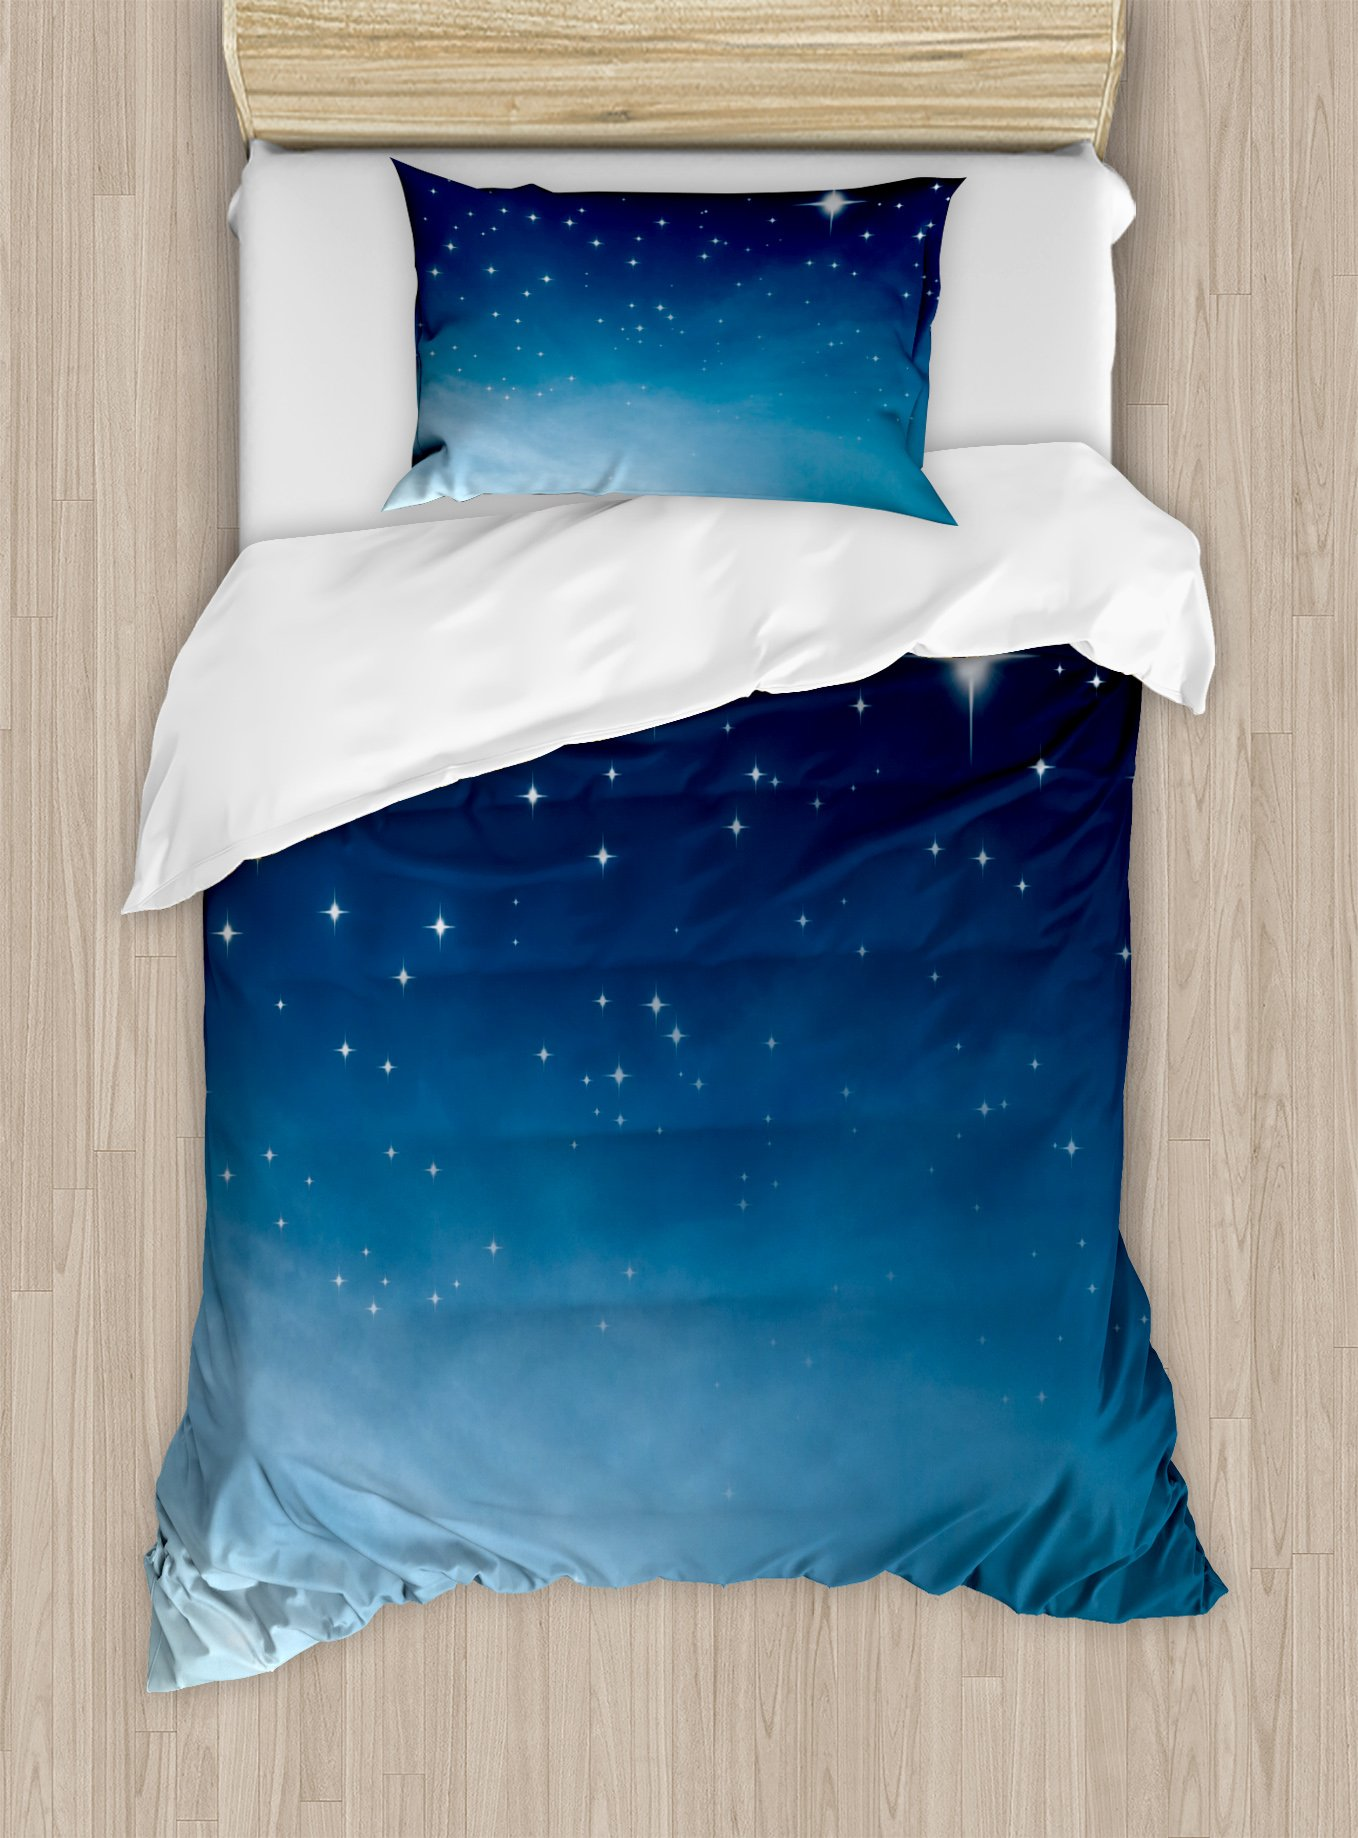 Ambesonne Night Duvet Cover Set Twin Size, Ombre Inspired Sky with Vibrant Stars Universe Astronomy Exploration, Decorative 2 Piece Bedding Set with 1 Pillow Sham, Light Blue Dark Blue White